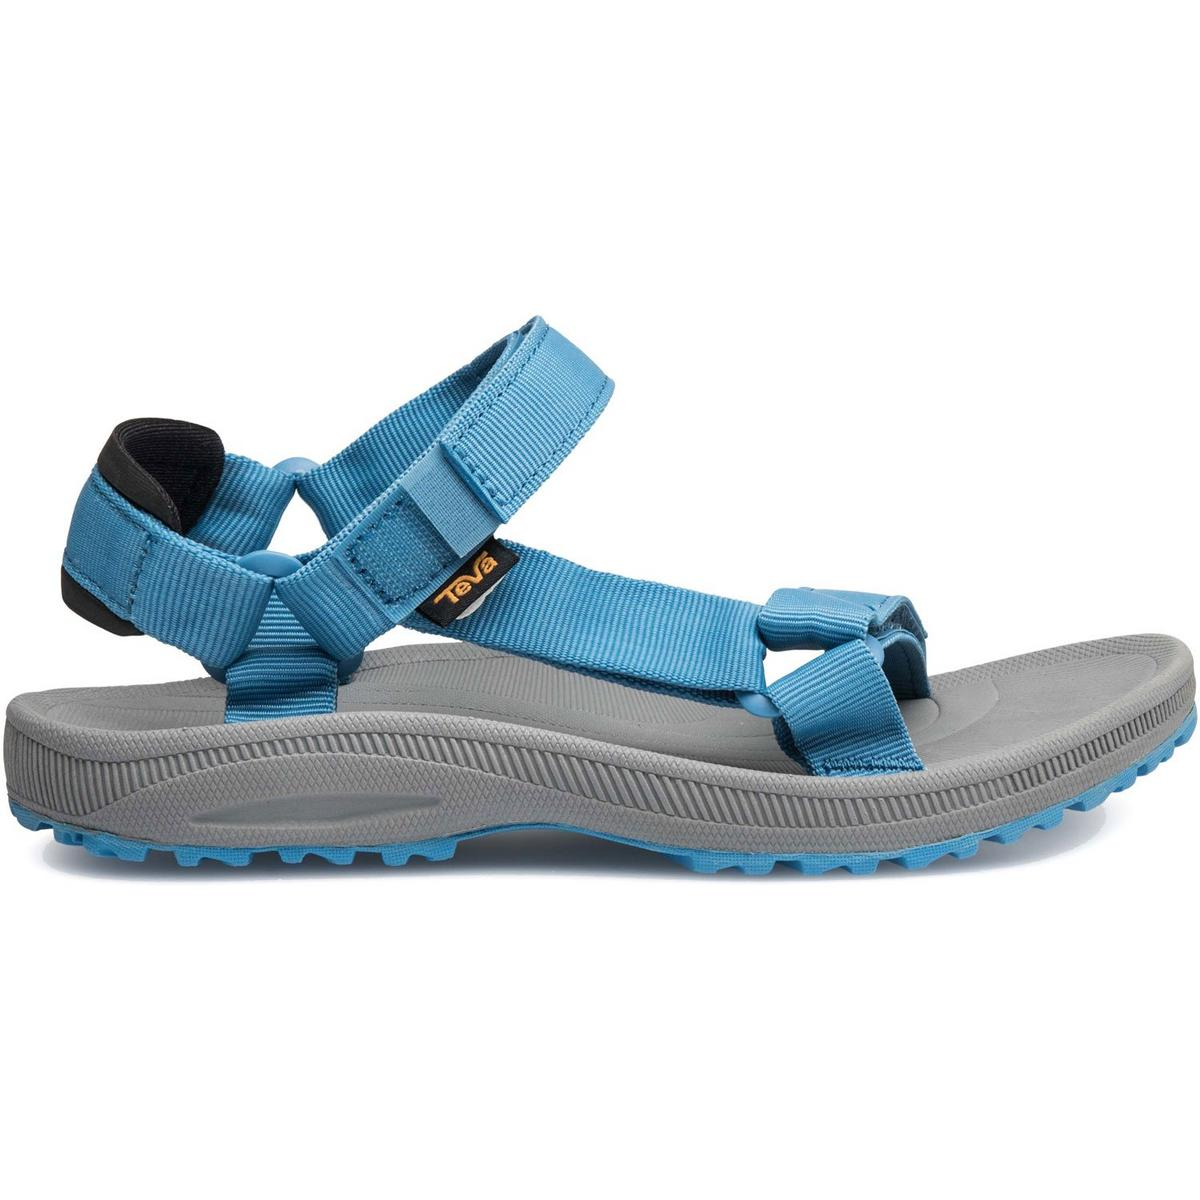 Teva Women's Winsted Solid Sandals